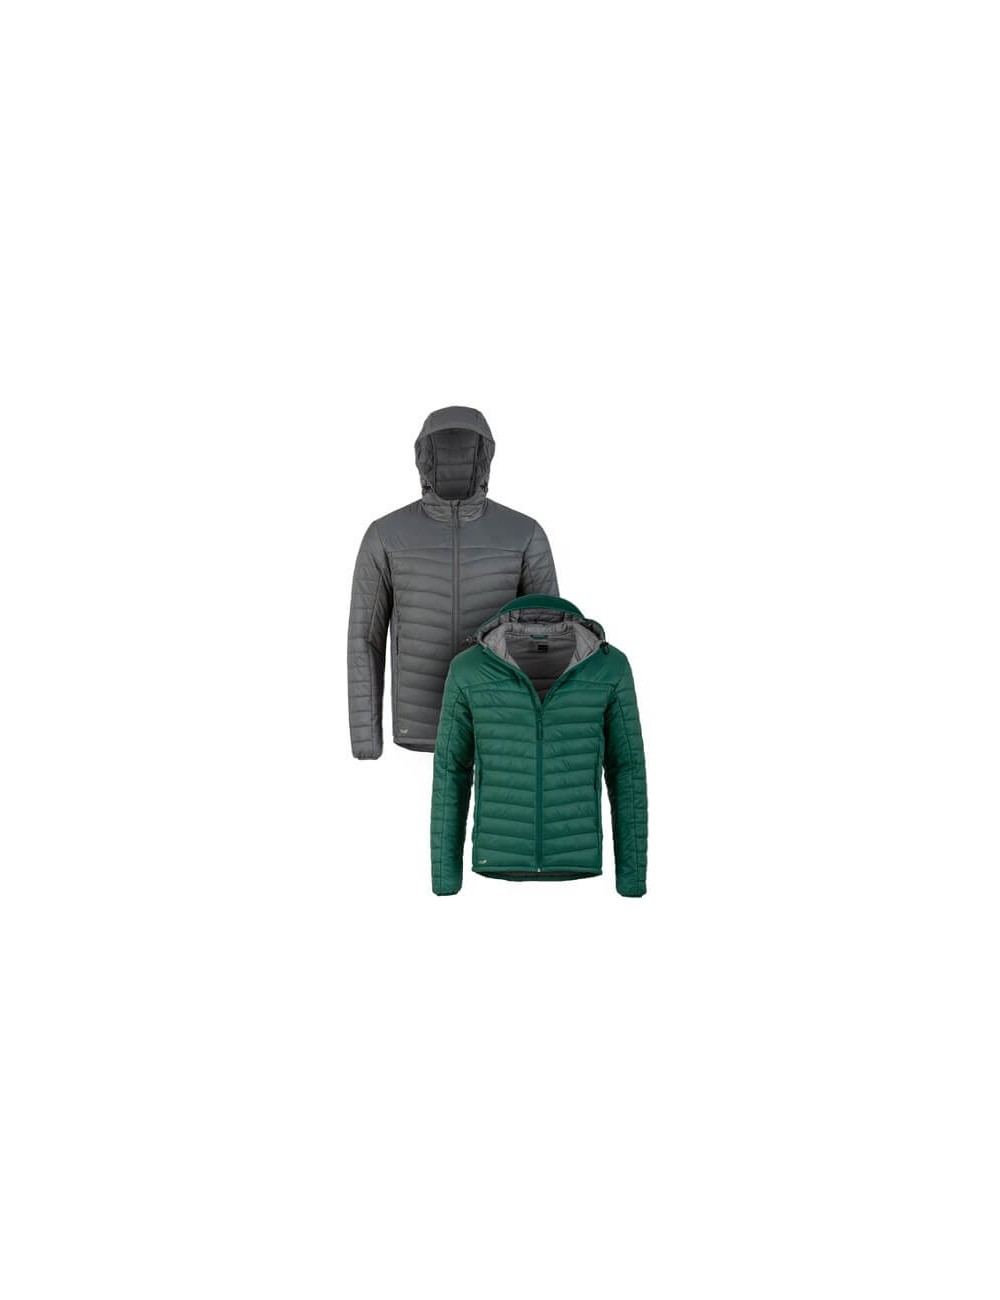 Highlander jas Lewis Insulated Tecloft  voor heren capuchon - Groen